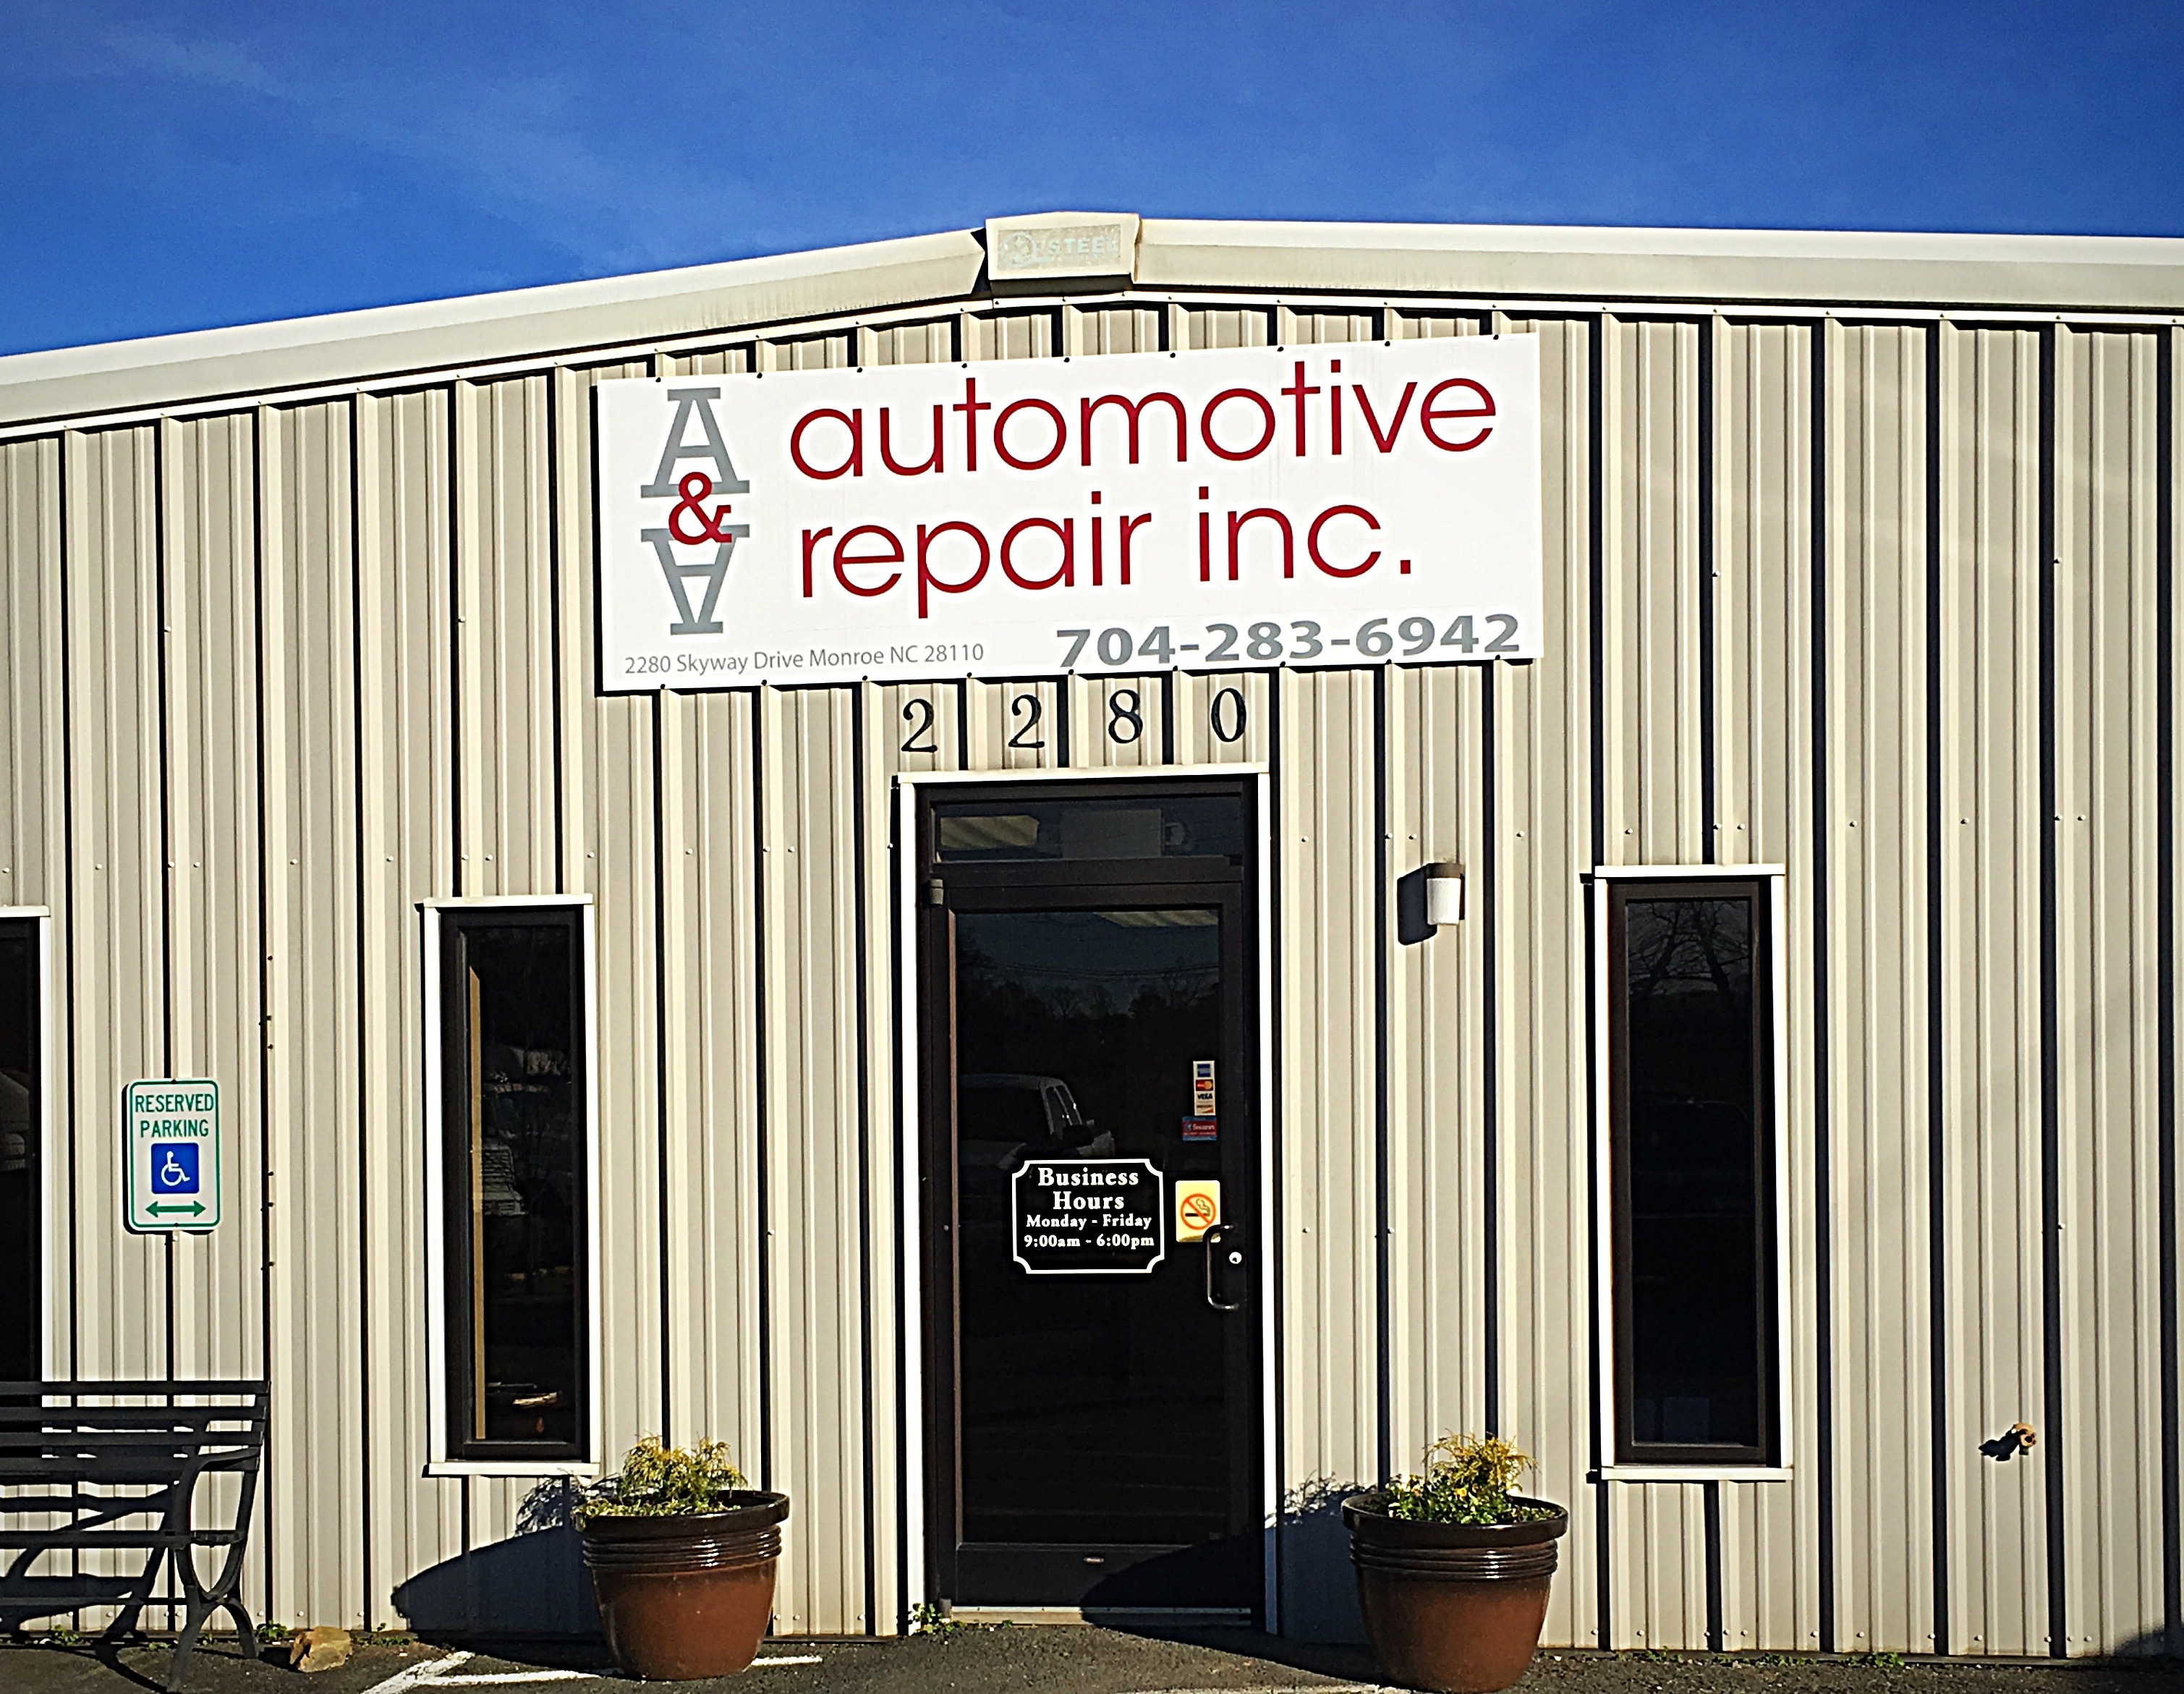 A&A Automotive Repair Inc. image 0